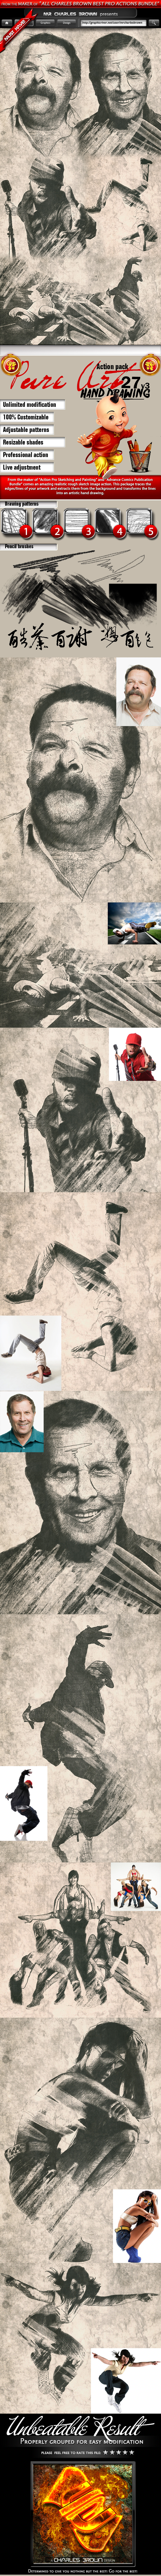 Pure Art Hand Drawing 27 – Chinese Cultural Art V3 - Photo Effects Actions